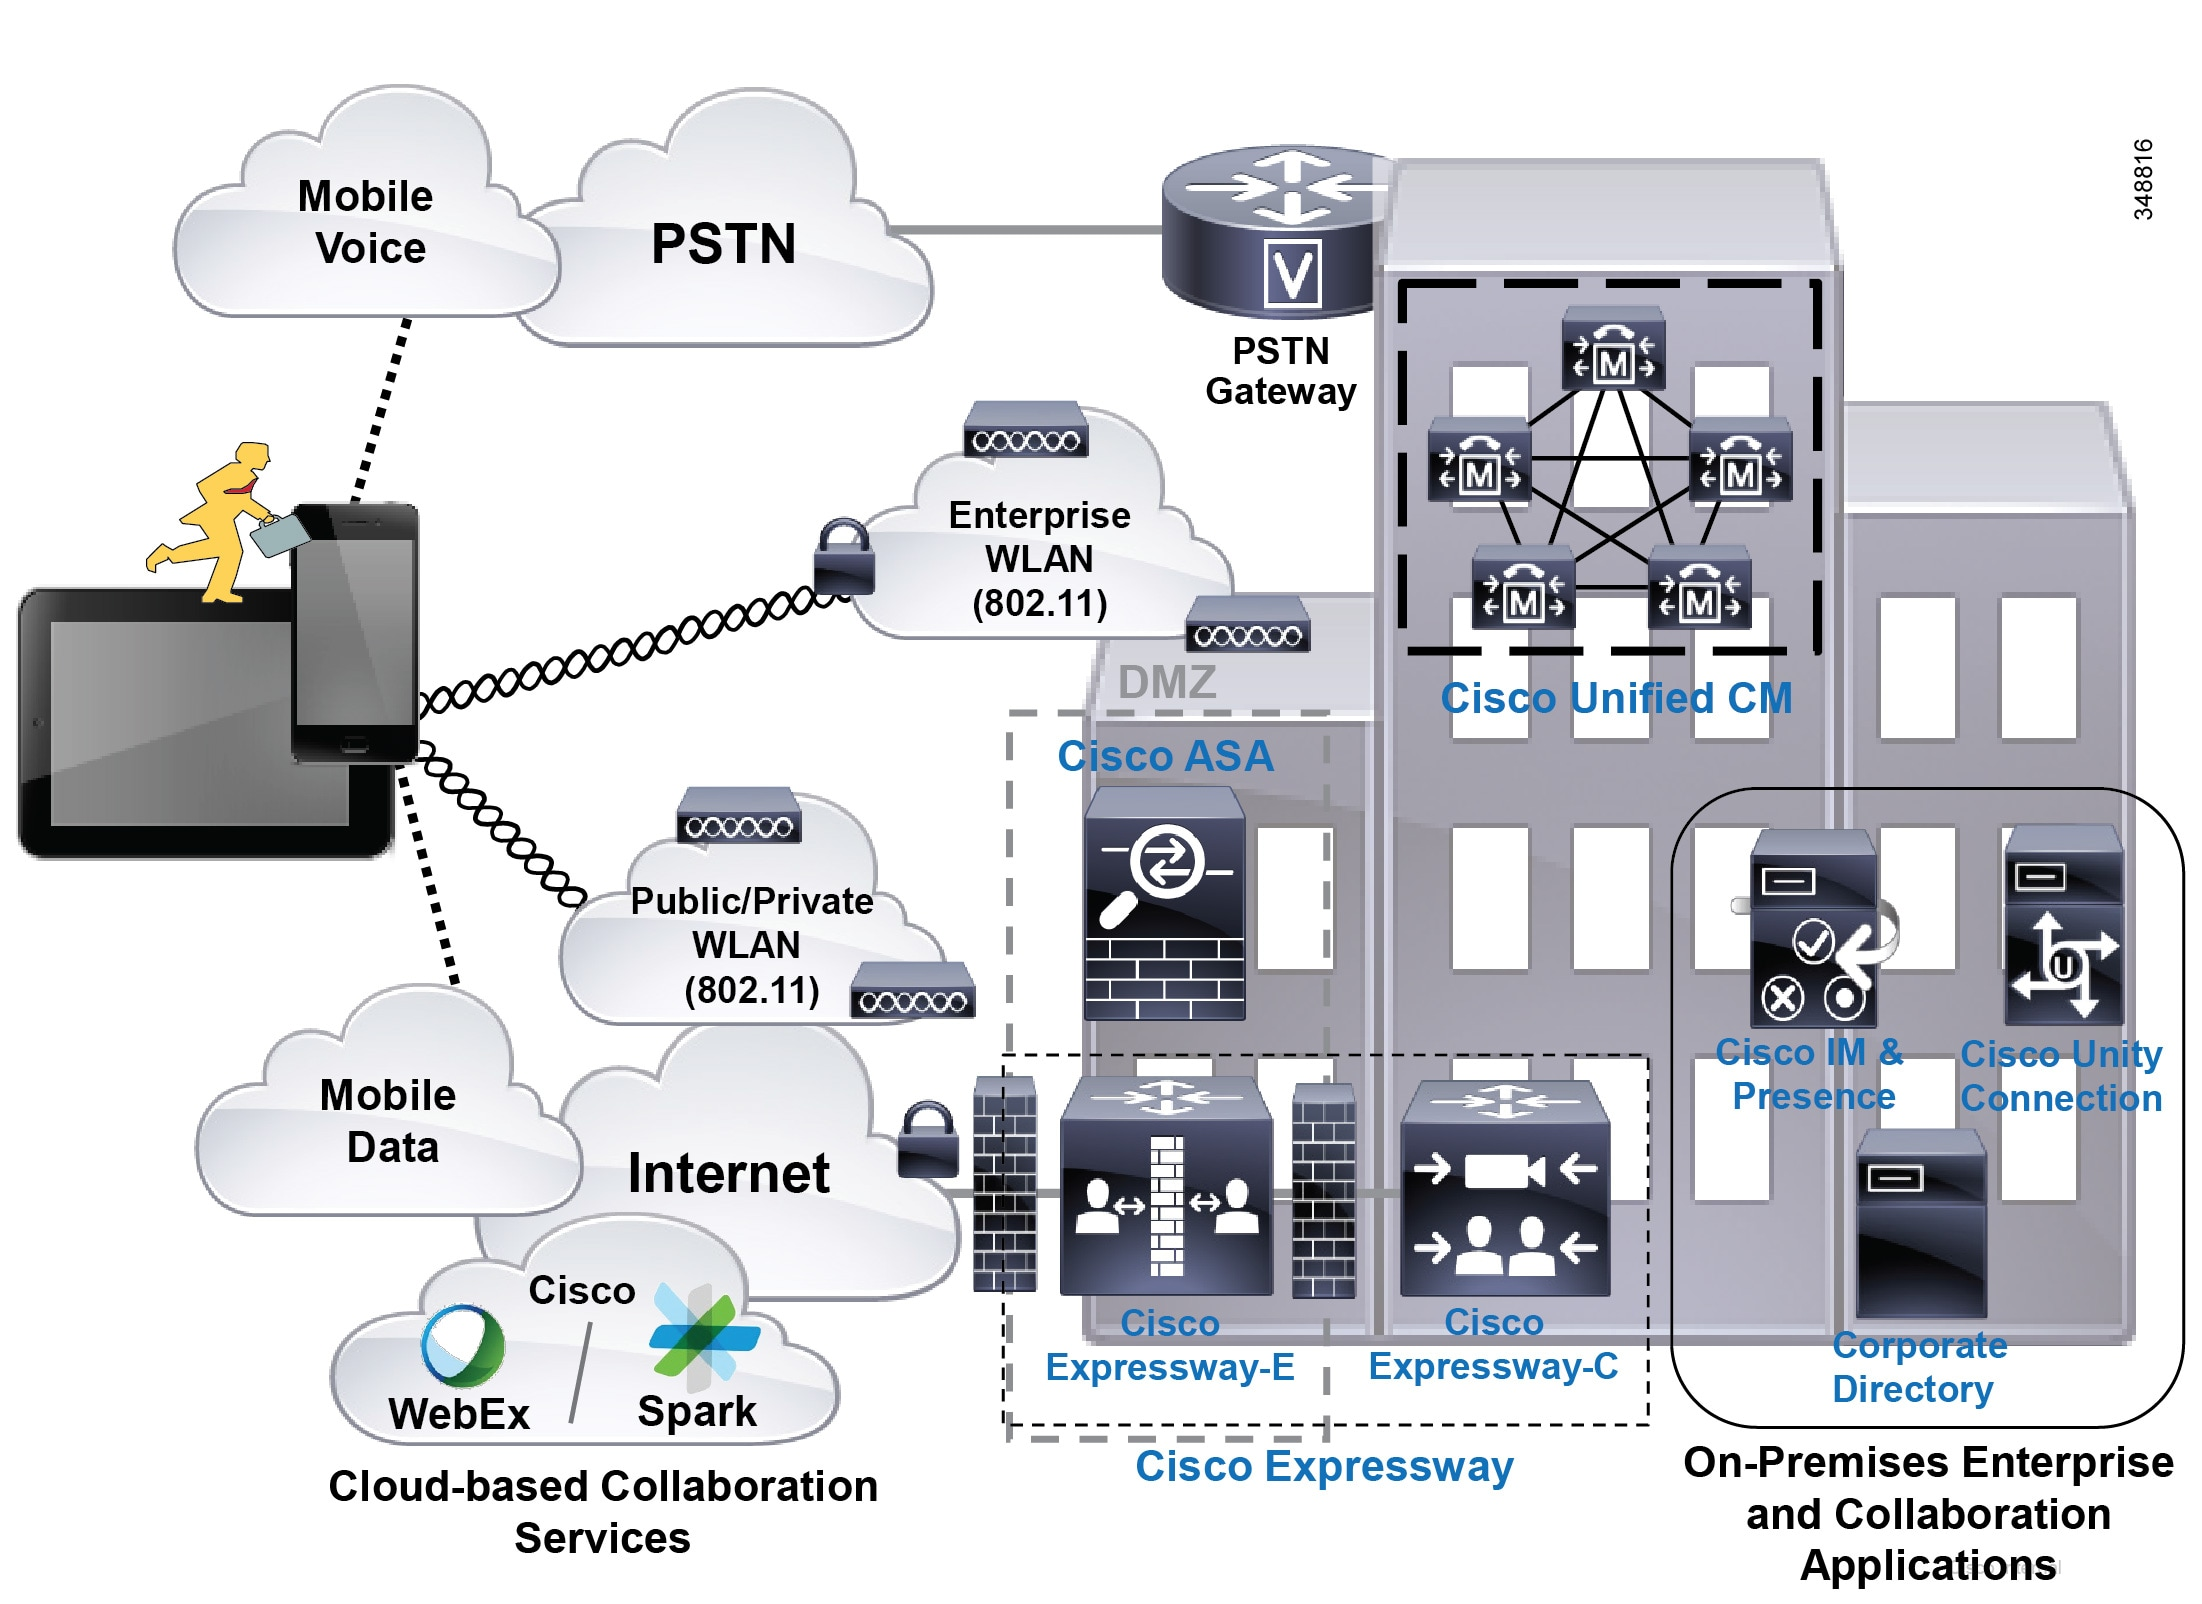 Cisco Collaboration System 11x Solution Reference Network Designs Information Society Dtmf Decoder Logger Electronic Circuit Schematic Figure 21 27 Mobile Clients And Devices Architecture